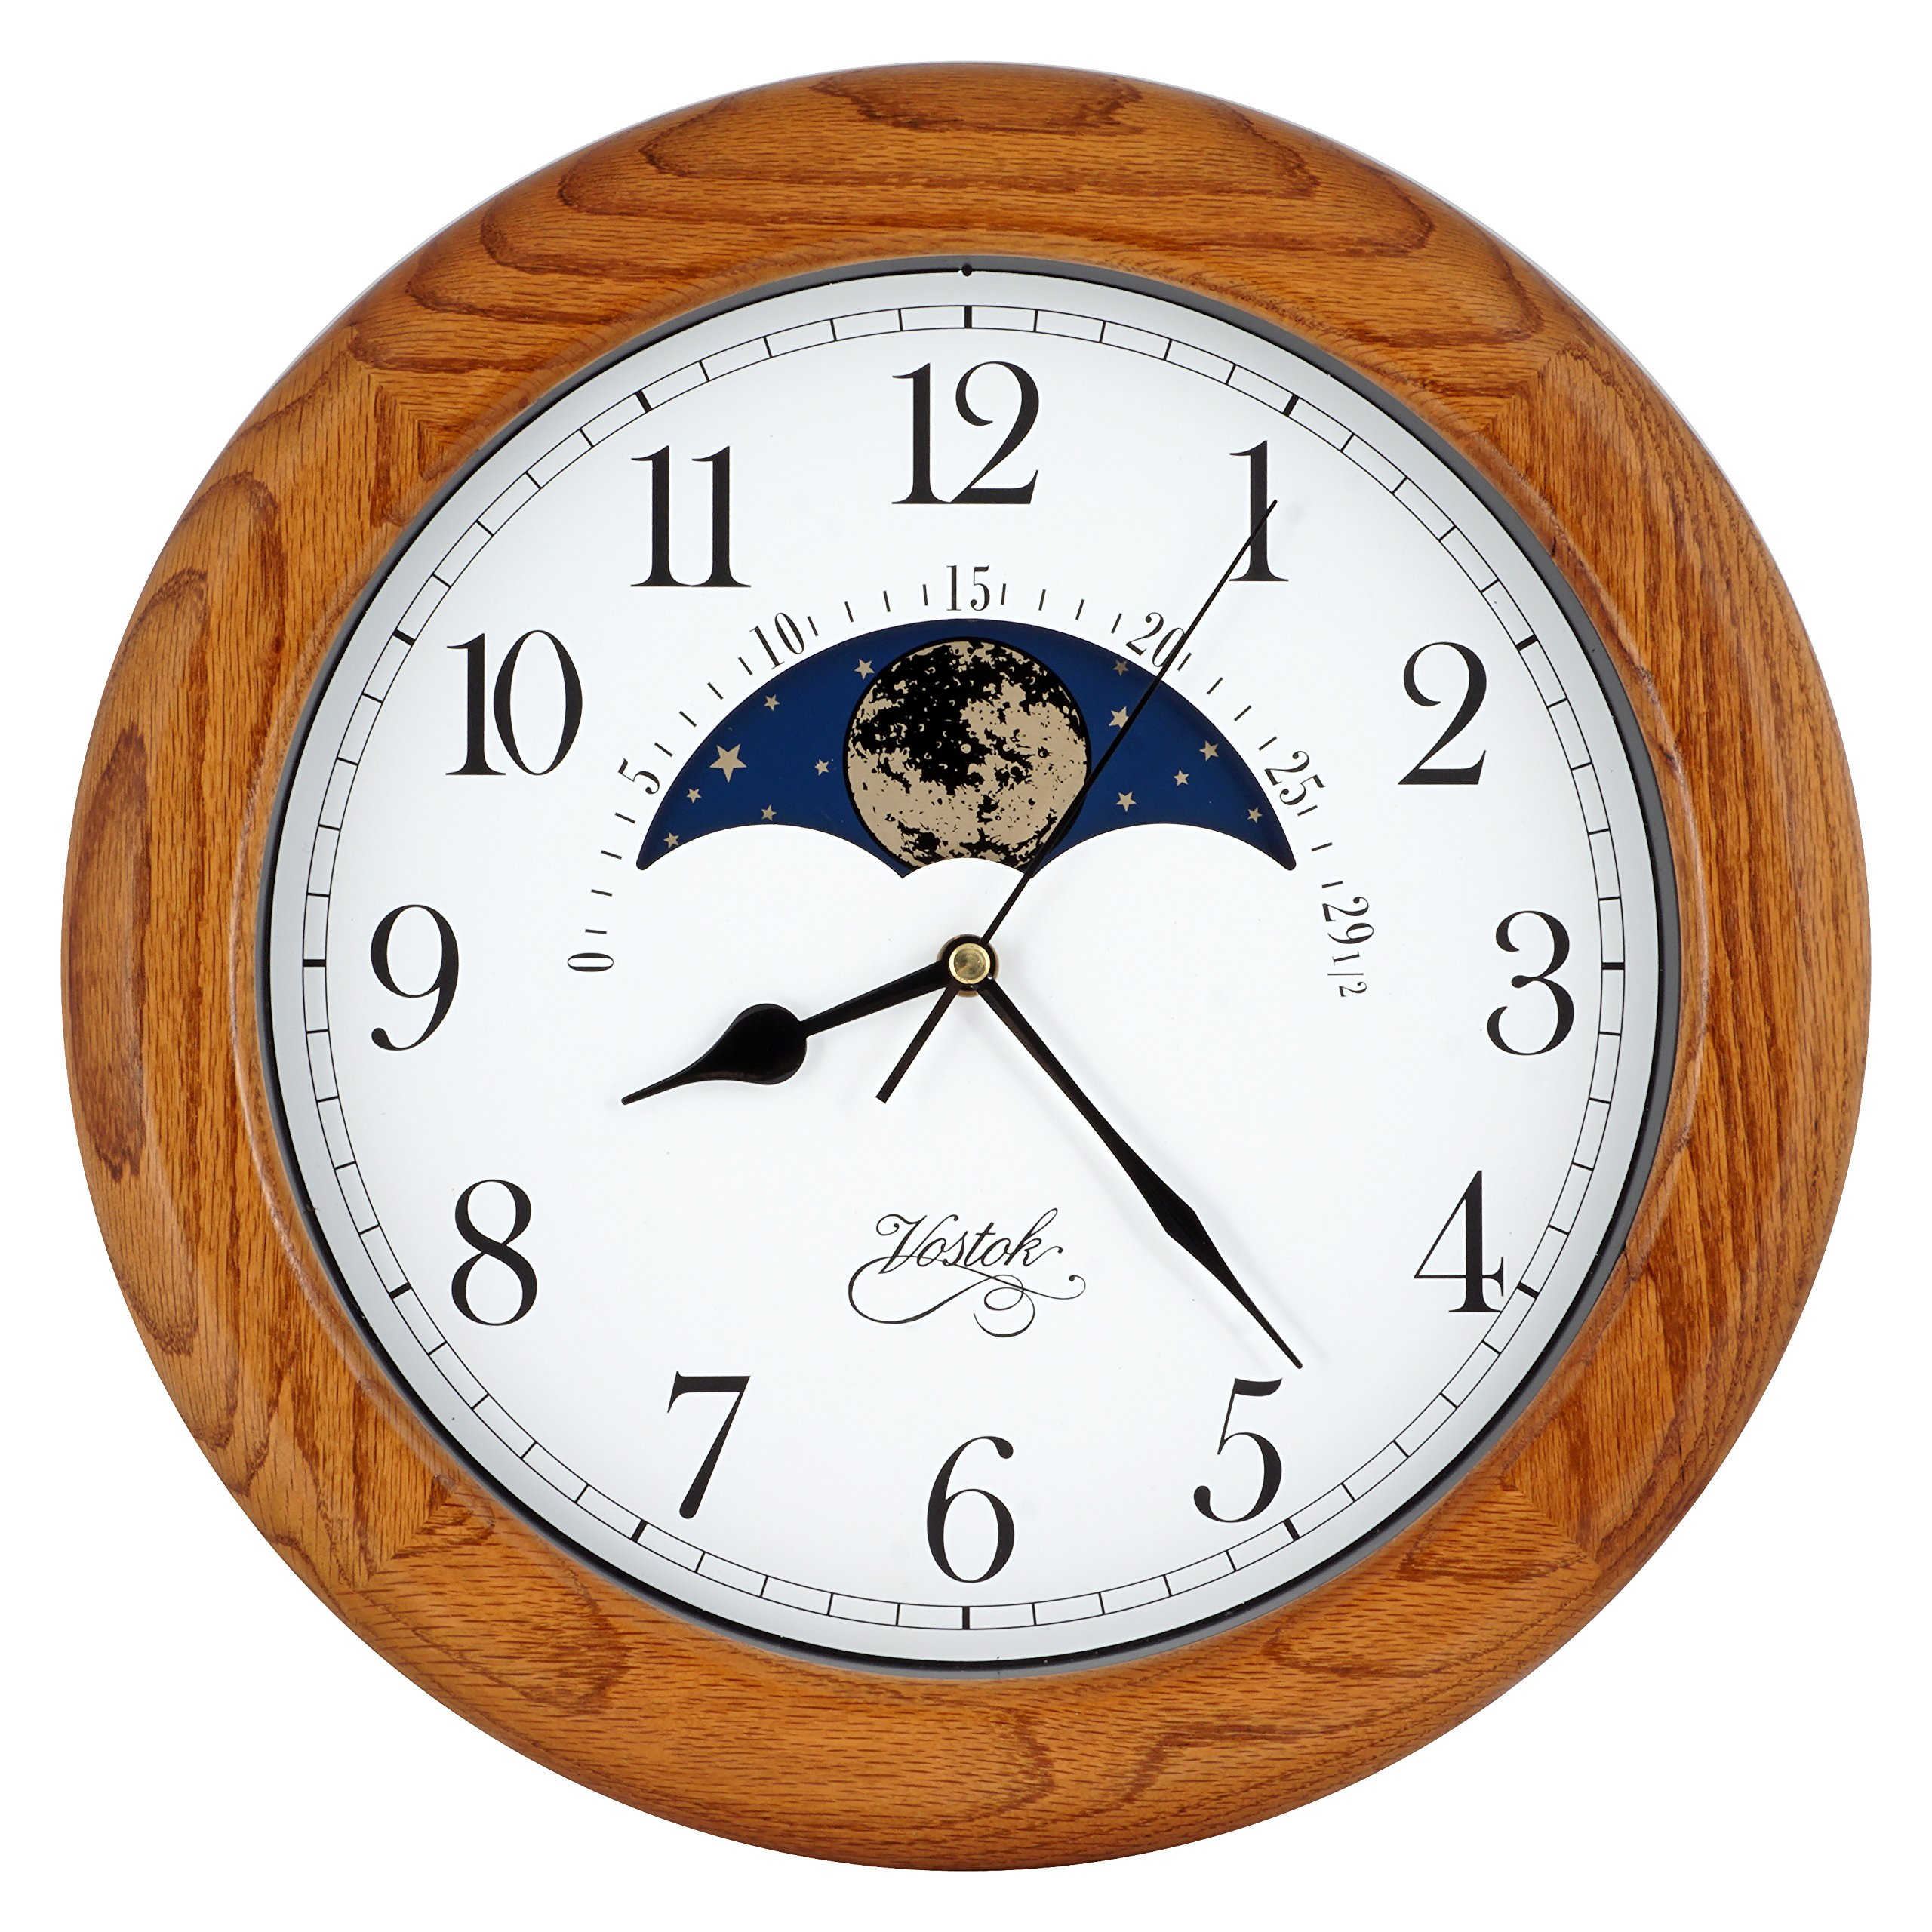 14 Inch Exclusive Solid OAK Wood Non-ticking Sweep Mechanical Specialty Moon Phase Moving Dial Wall Clock, Gift, Home Décor (TCWS712-MD-OAK)